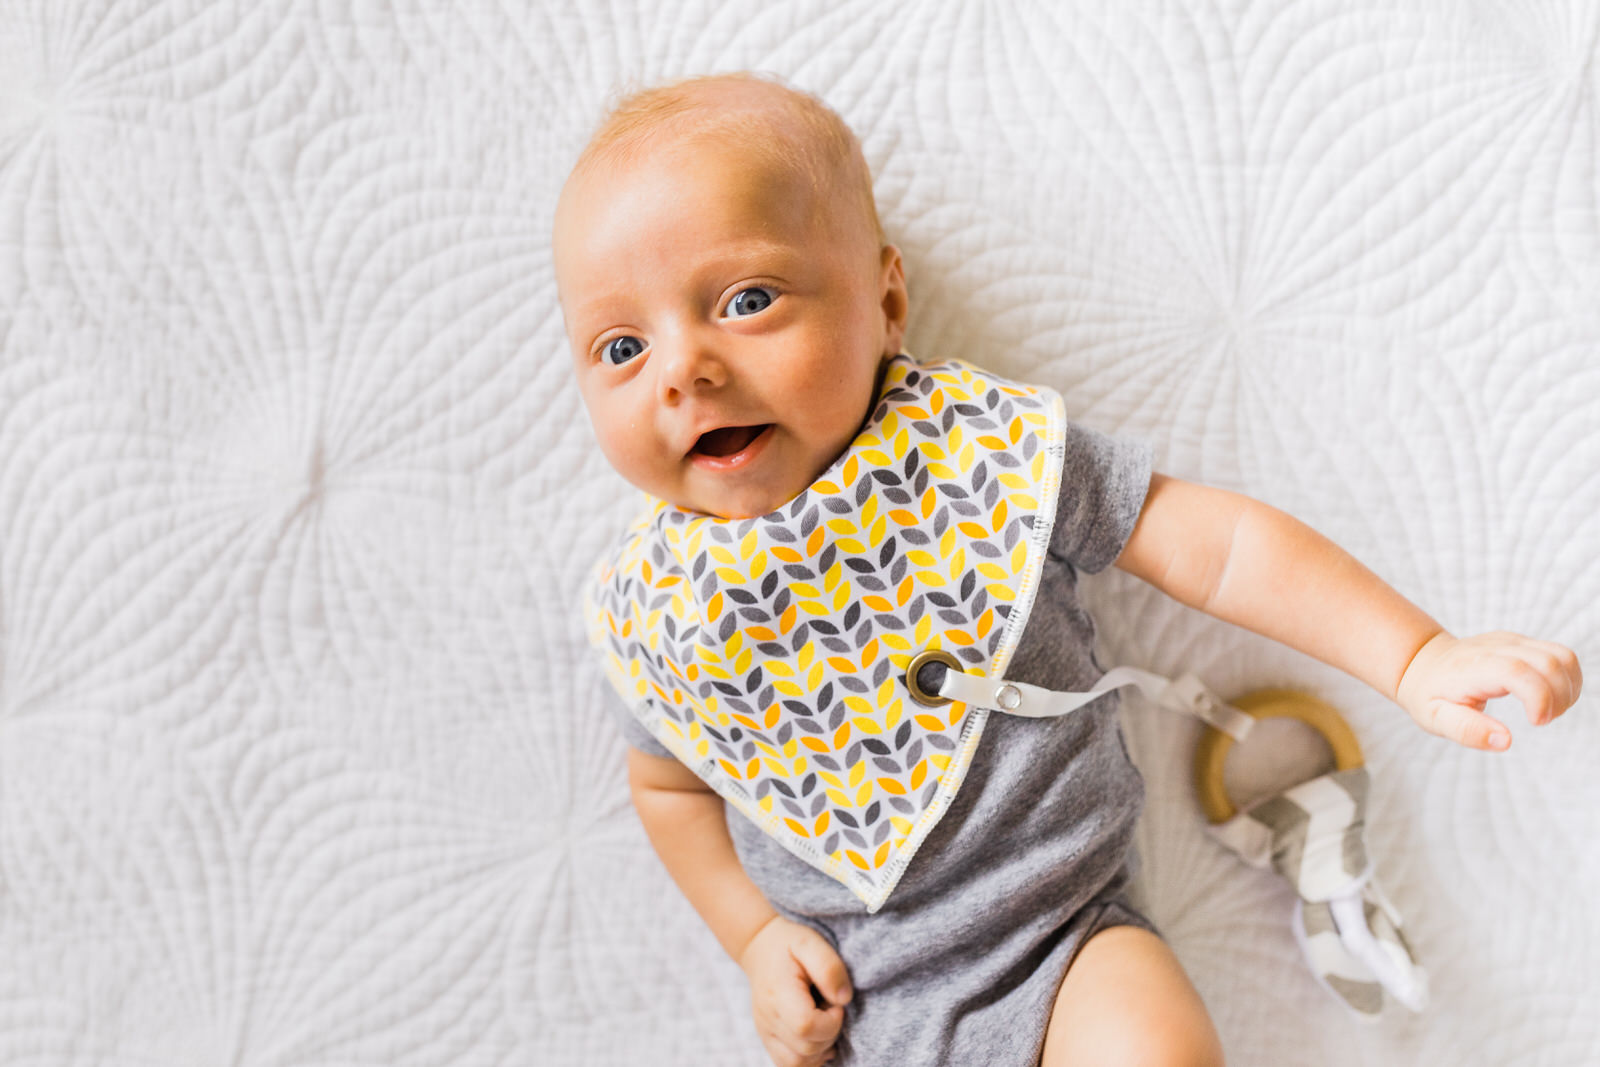 kids-clothes-small-business-baby-newborn-collaboration-7644.jpg